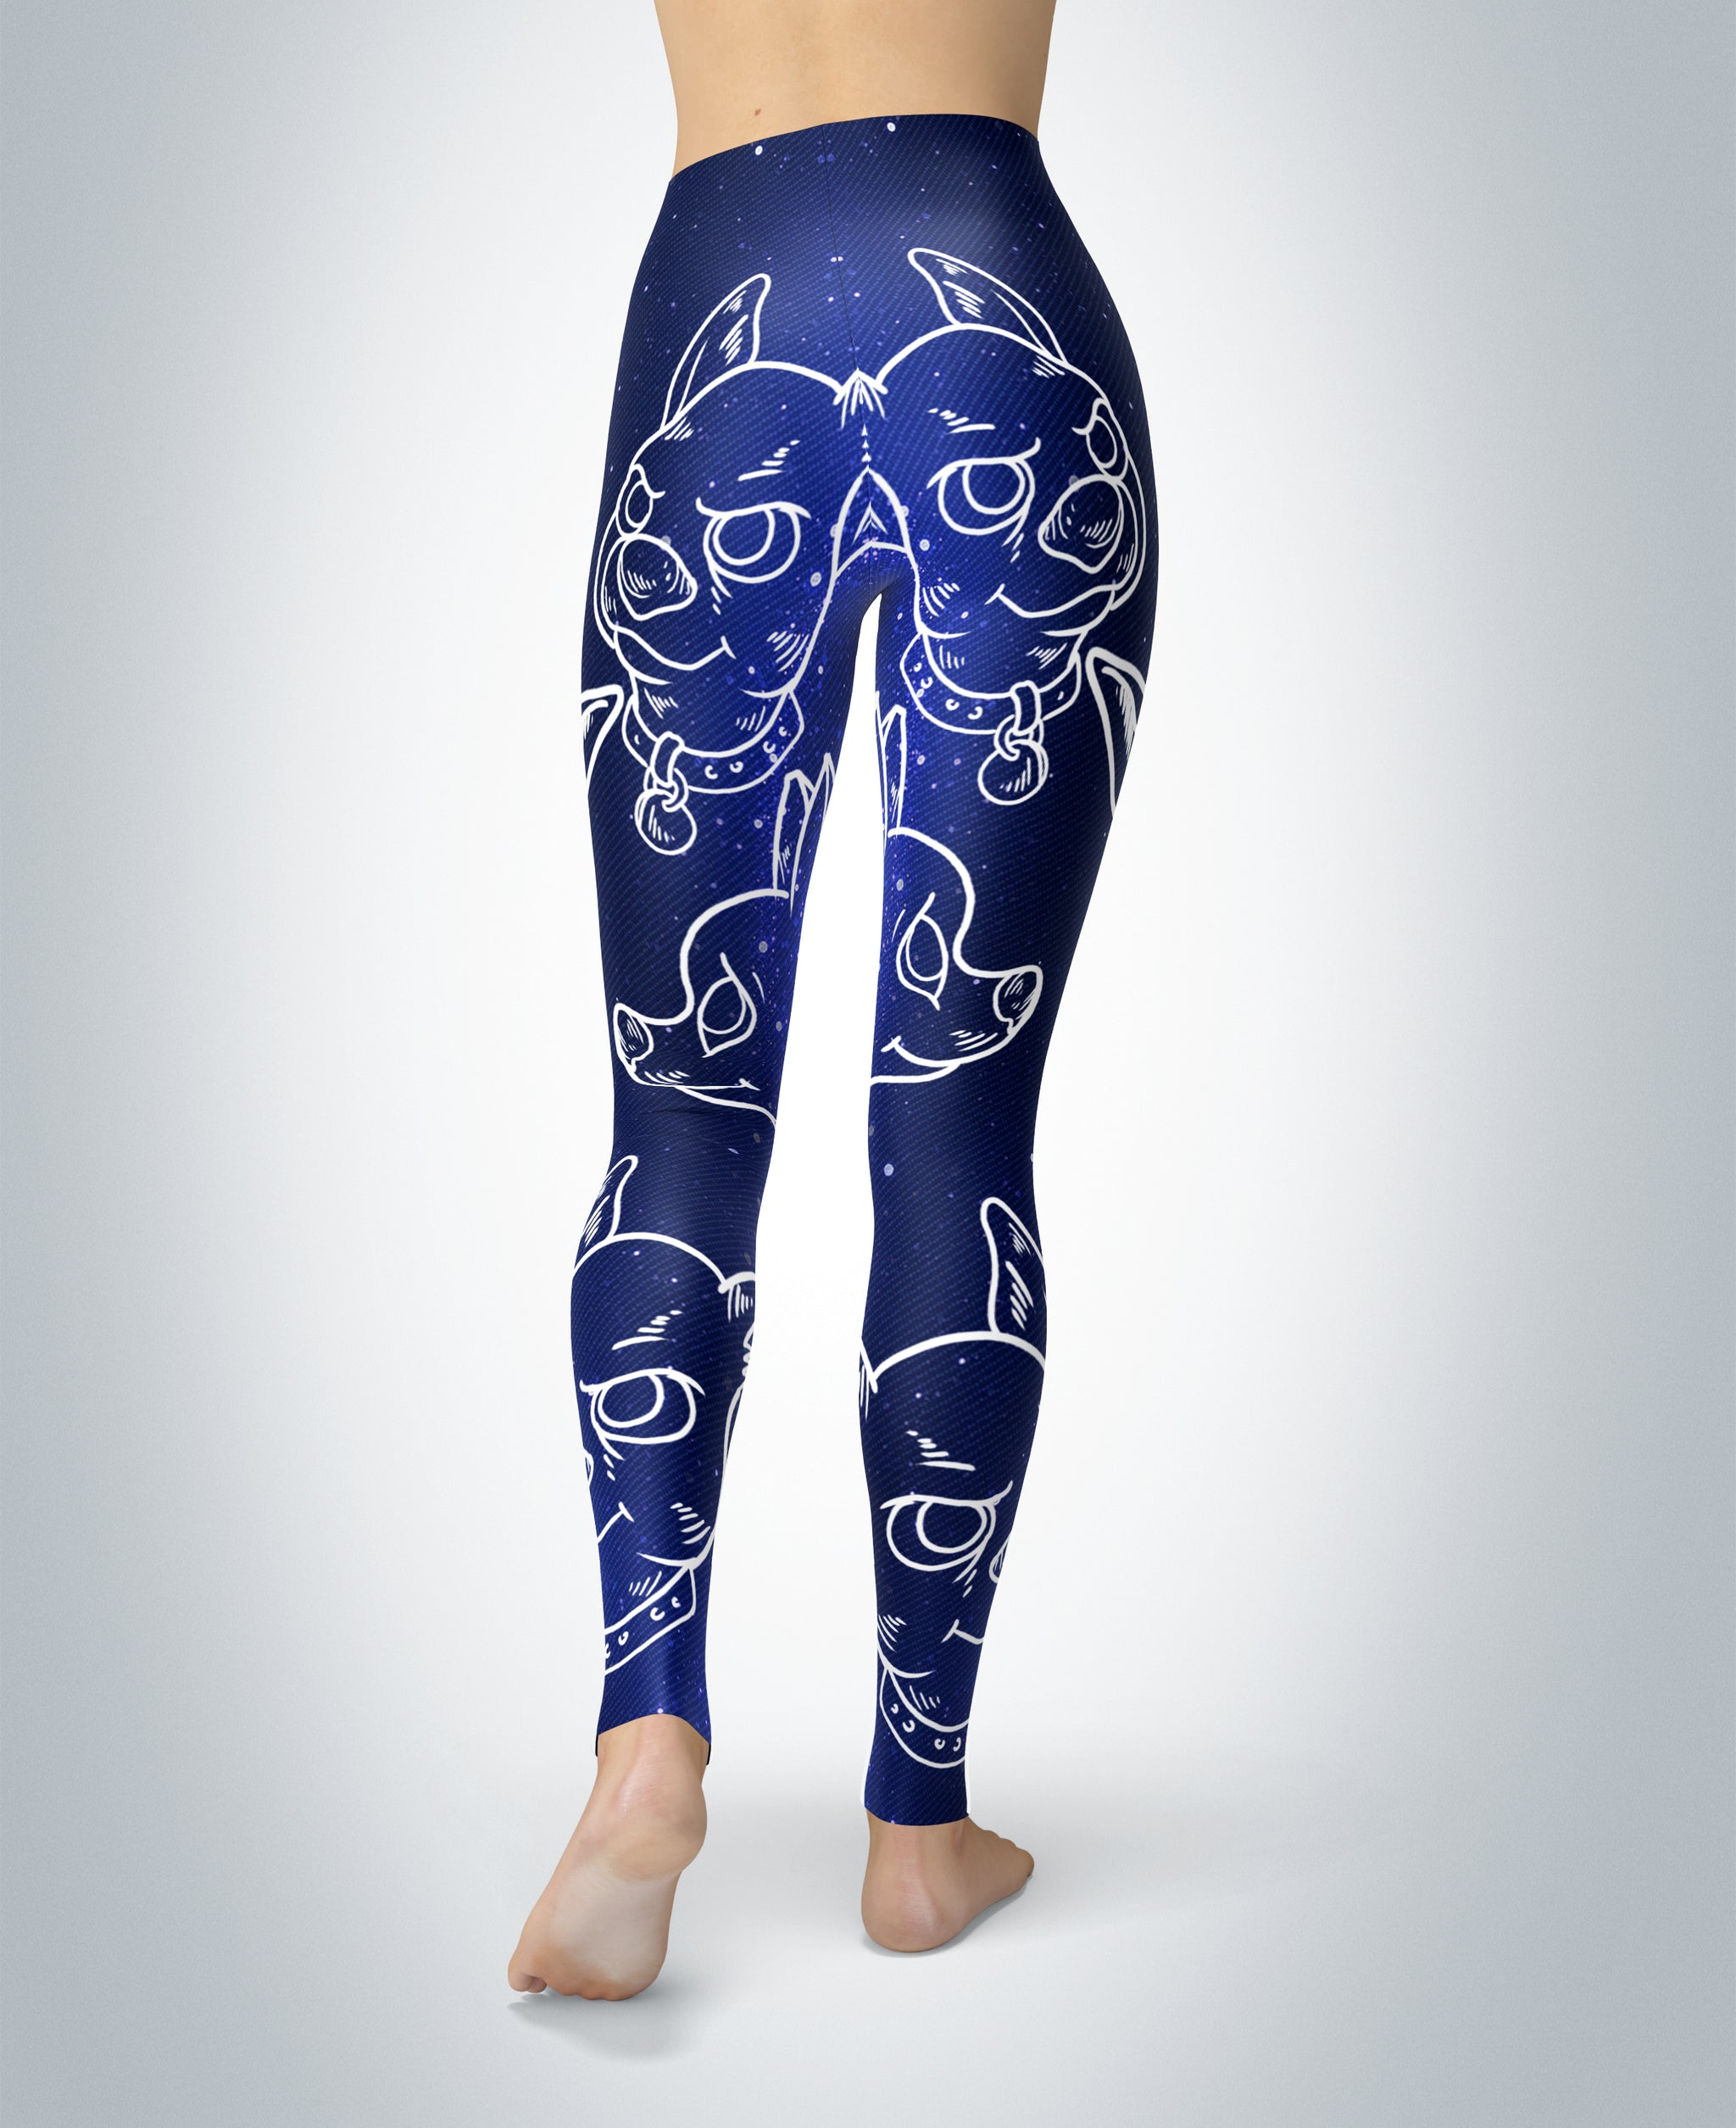 e51f75973550f8 Buy Galaxy Dog Leggings: Leggings | Leggings